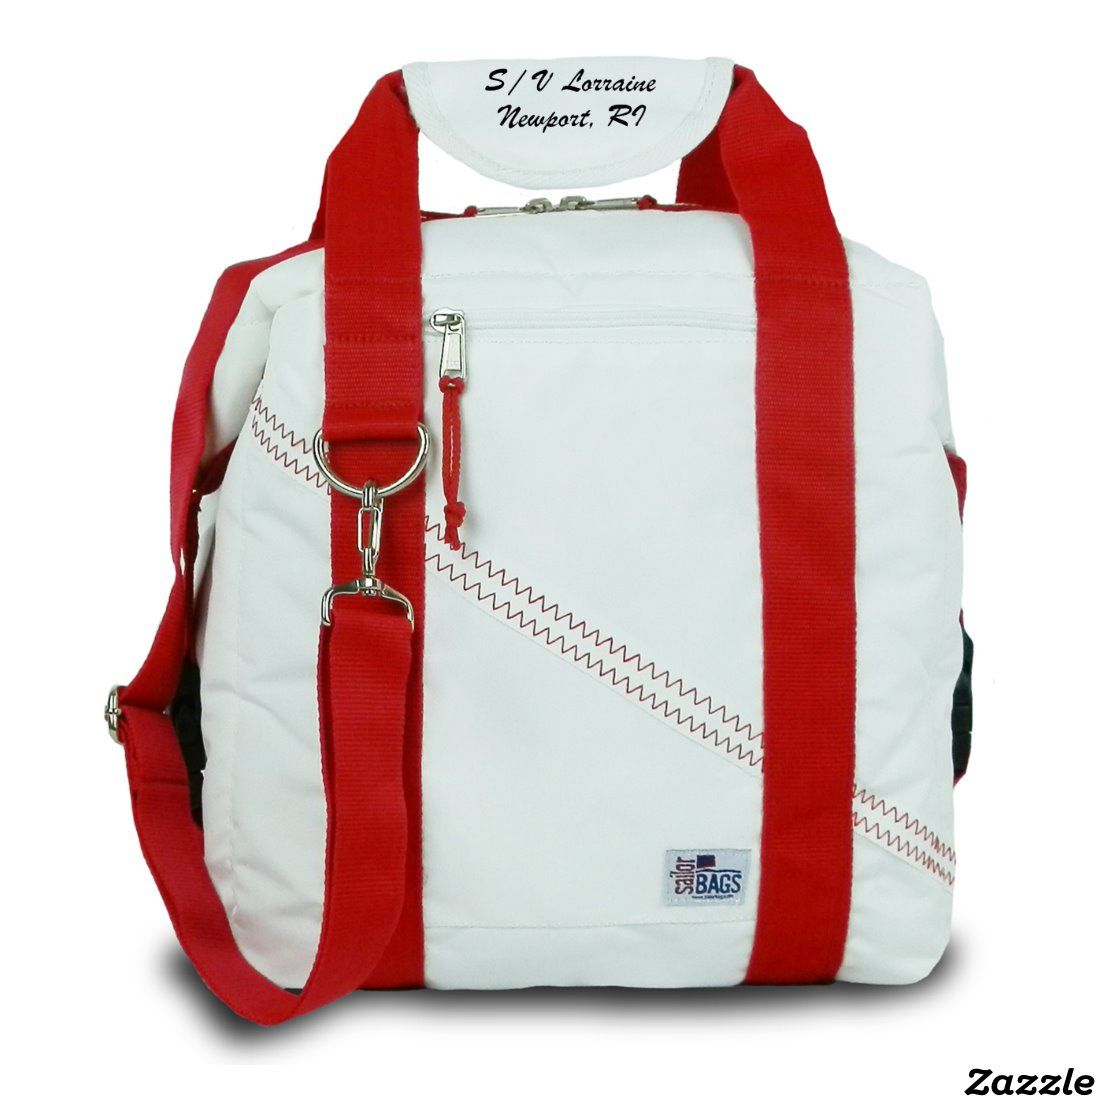 Newport Insulated Cooler Bag With Red Straps Zazzle Com In 2020 Cooler Bag Sailor Bags Bags